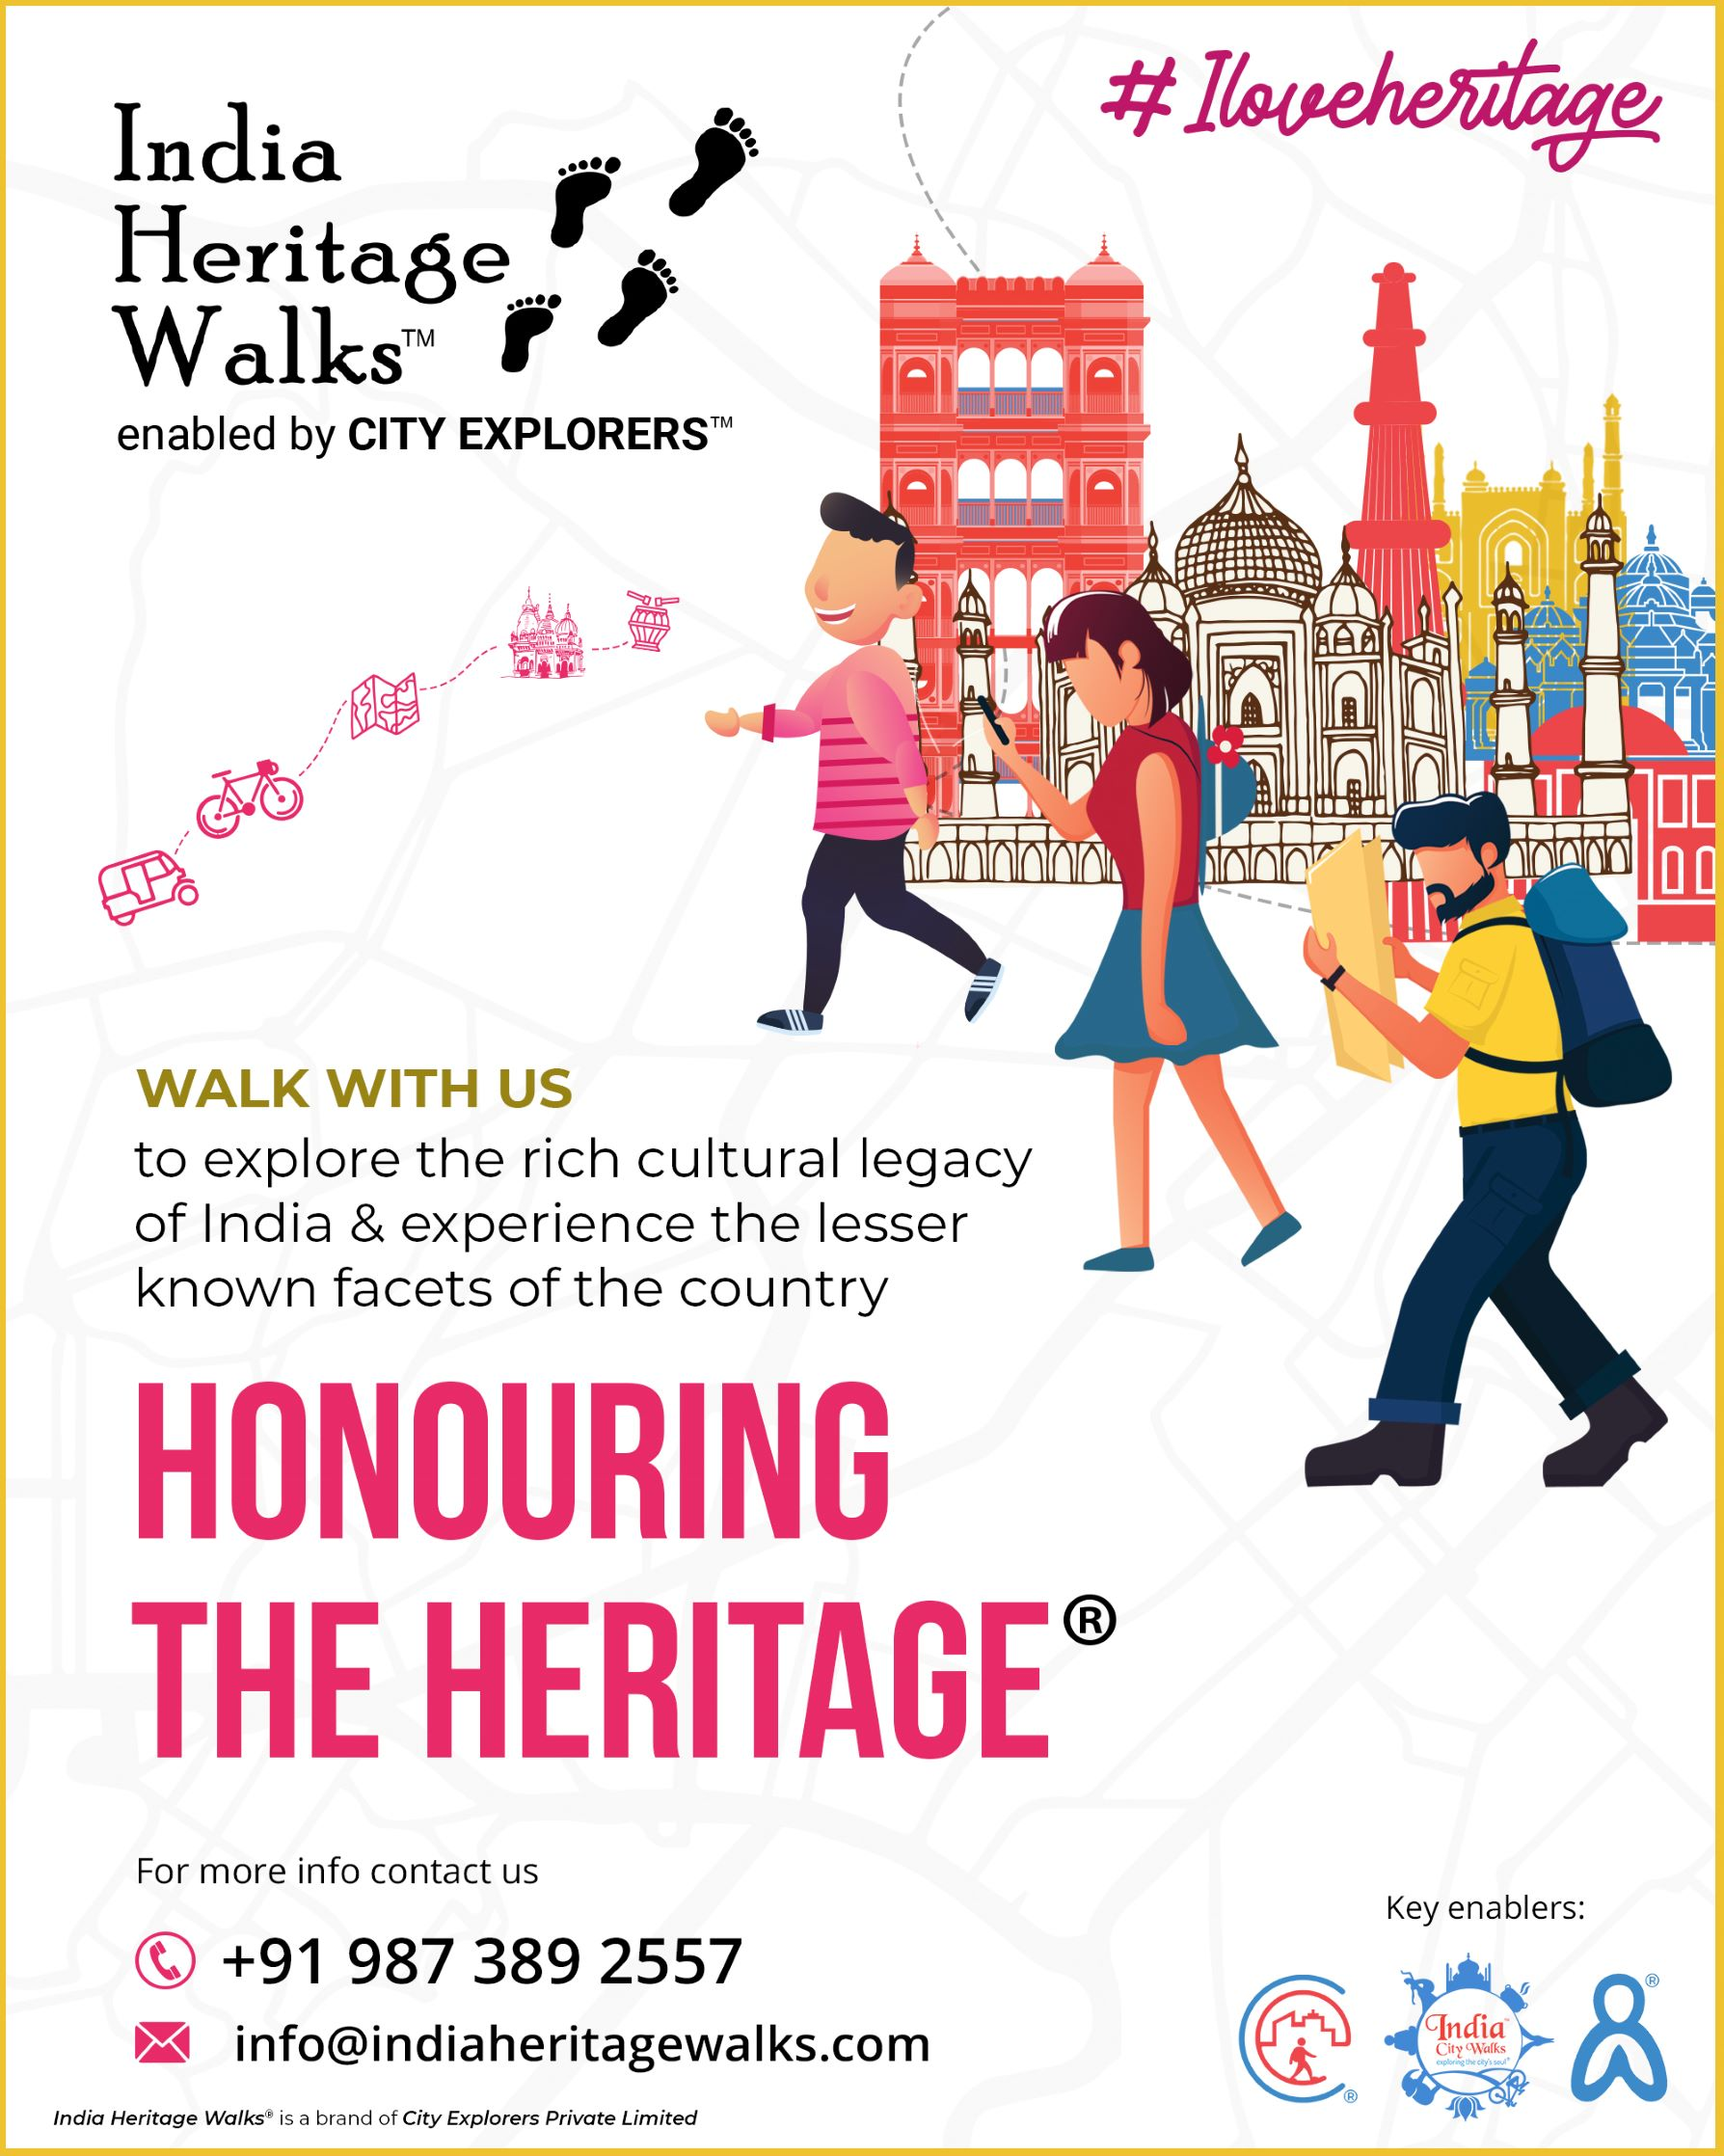 Honouring The Heritage®